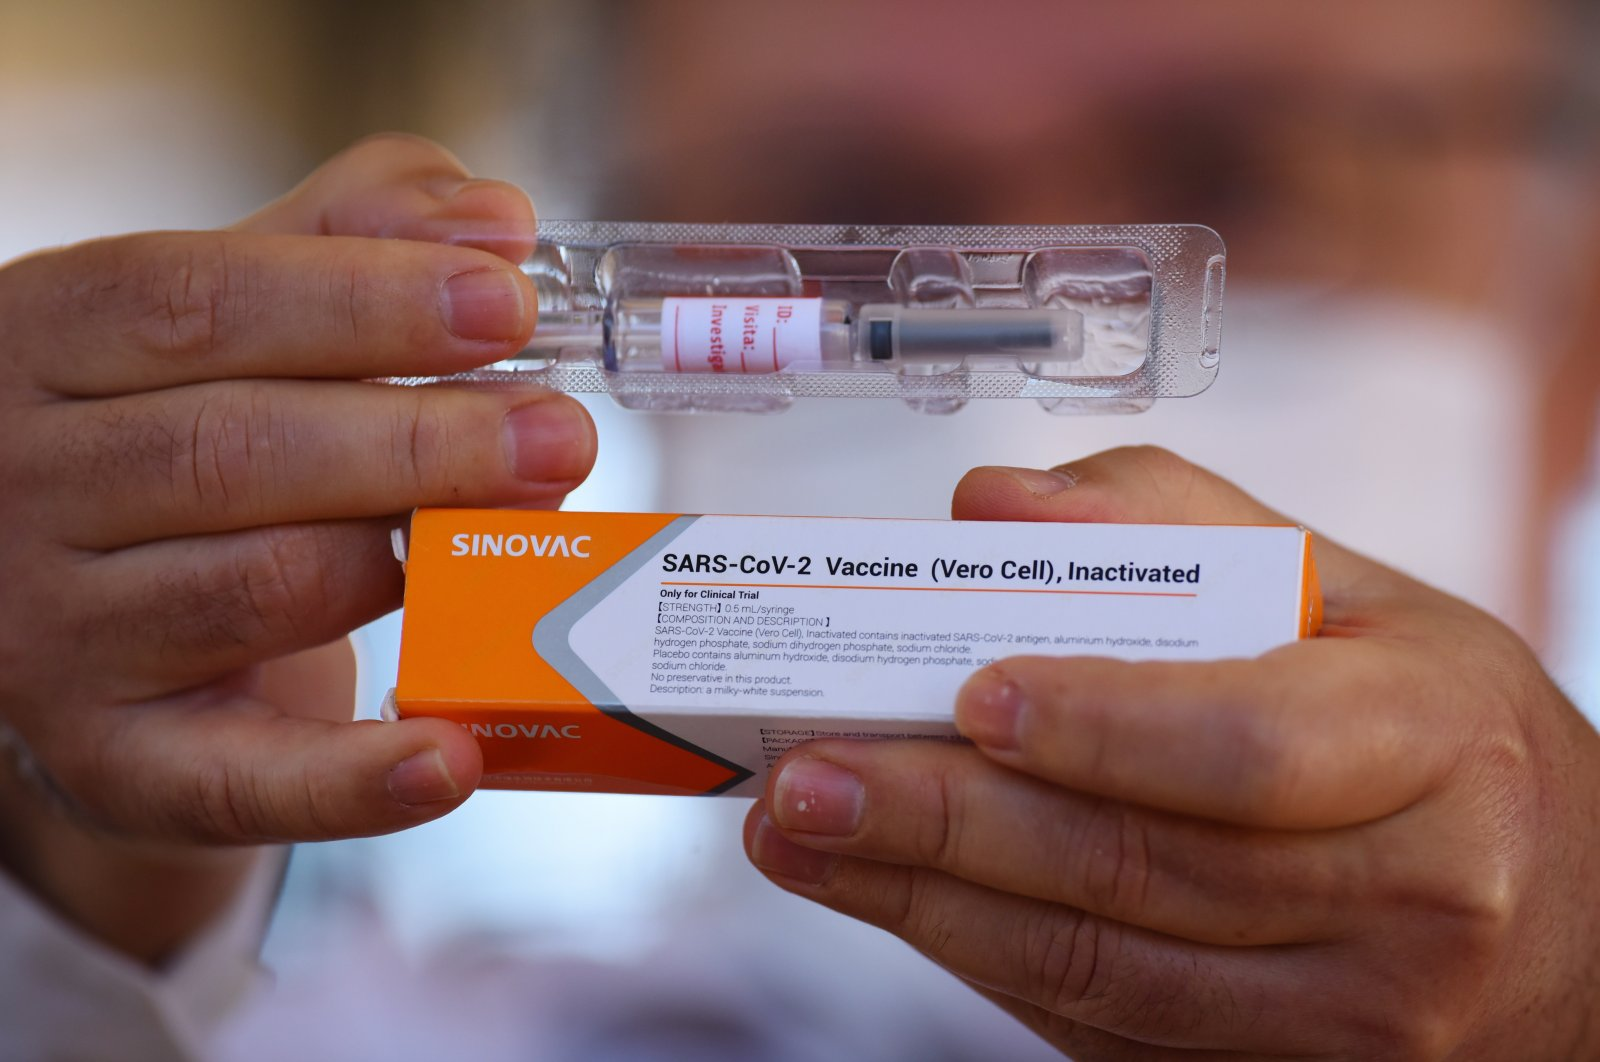 Professor Gustavo Romero, who coordinates research on the coronavirus vaccine in Brazil, shows a dose of Sinovac's coronavirus vaccine in a phase three trial at the University Hospital of Brasilia, in Brasilia, Brazil, Aug. 5, 2020. (EPA Photo)